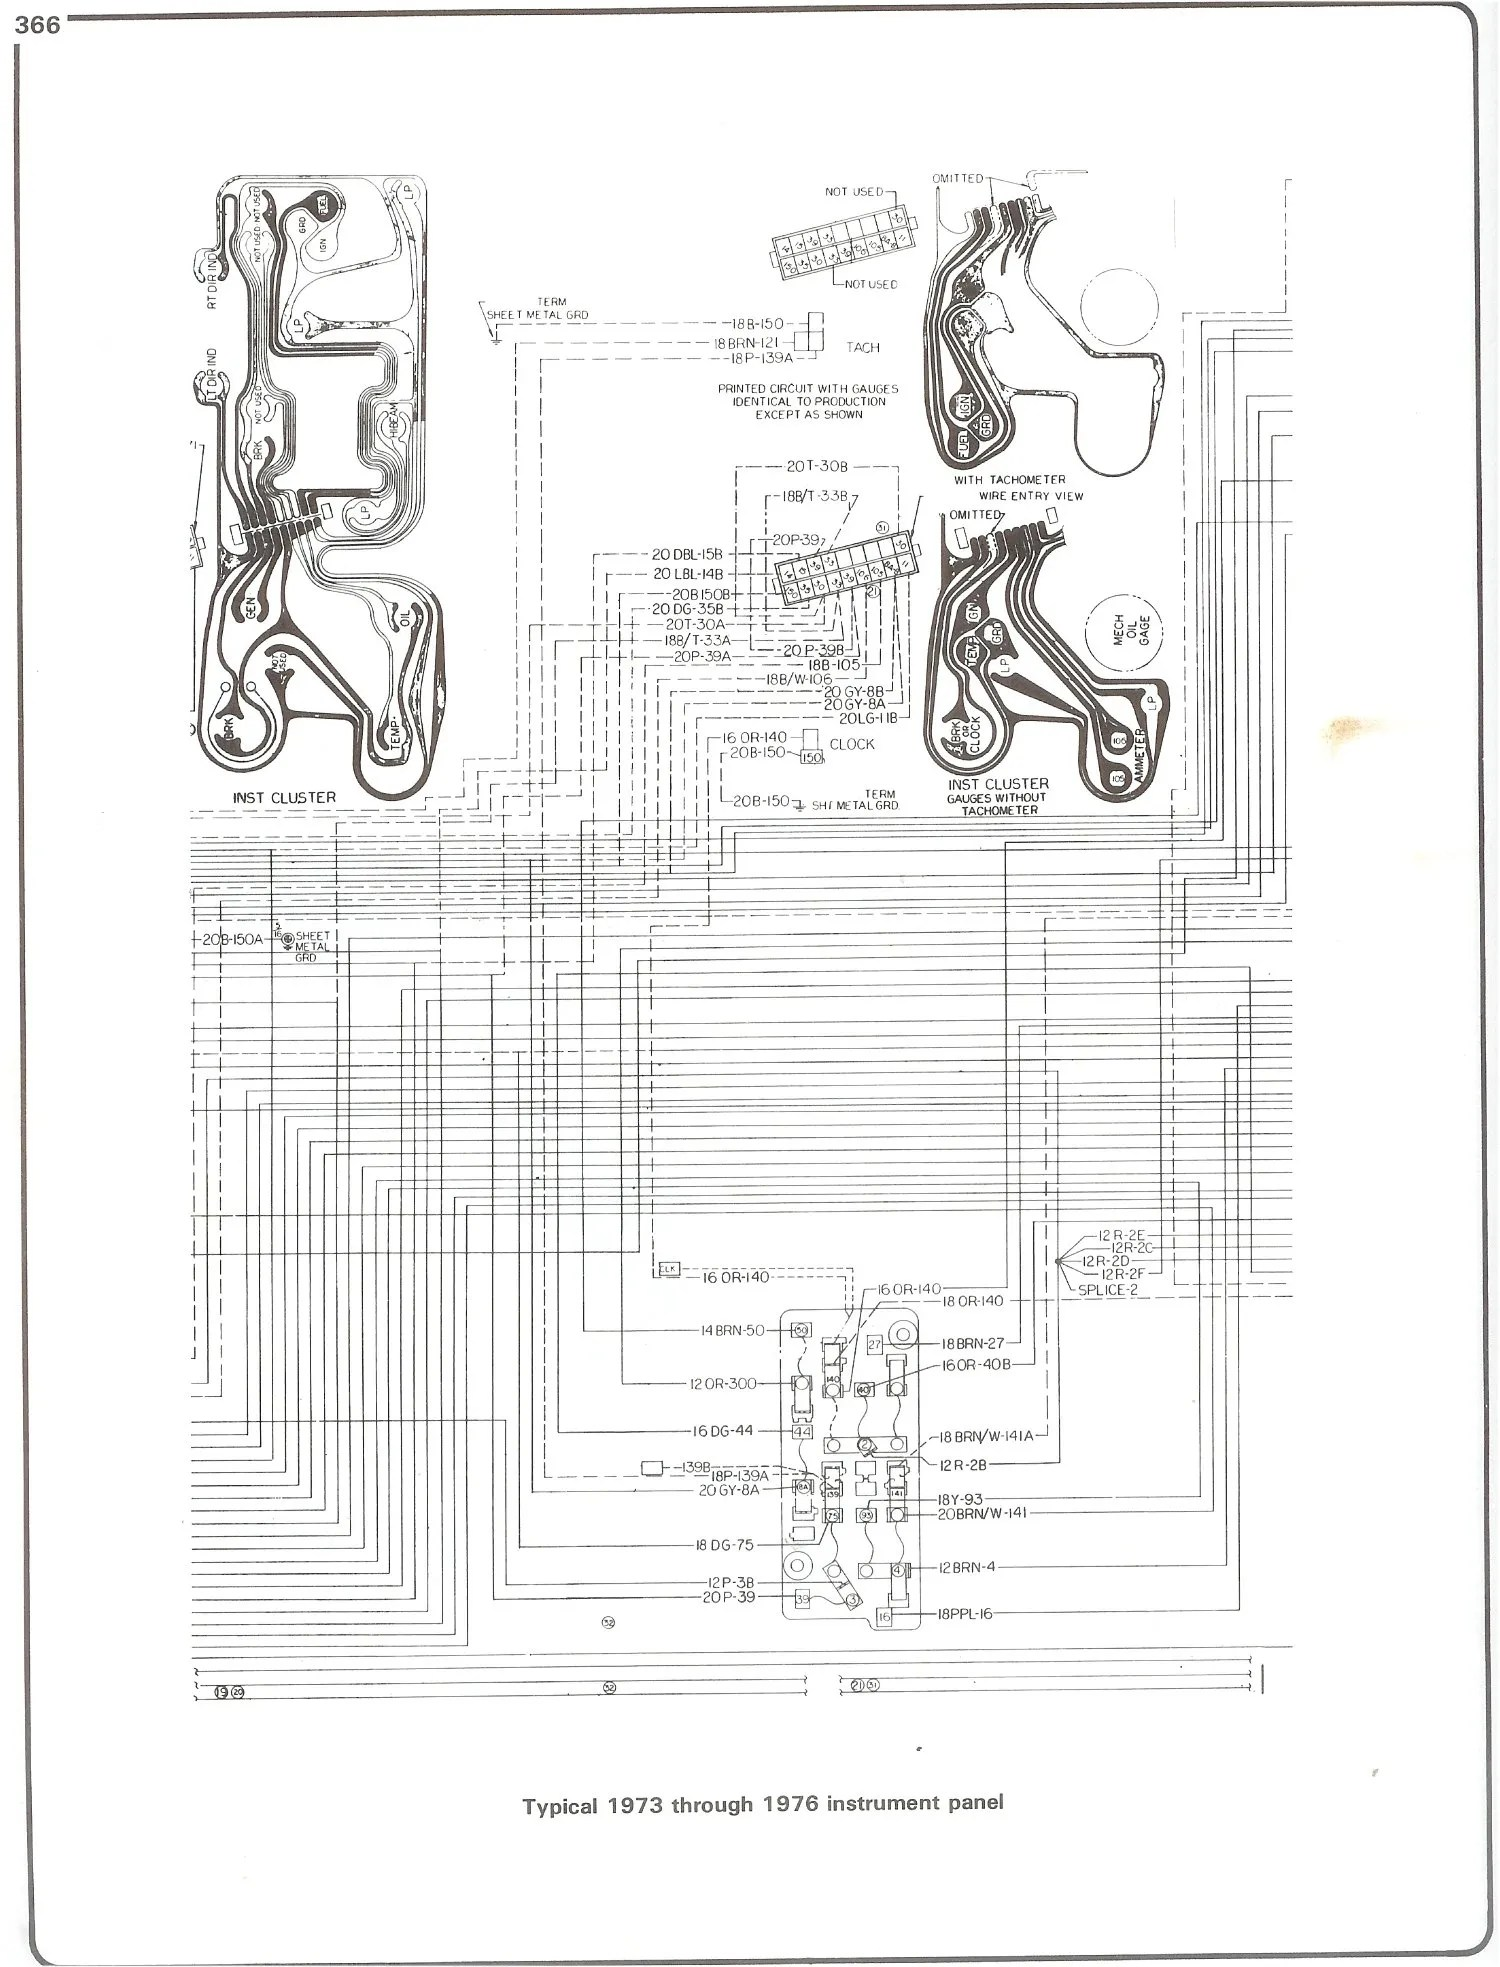 hight resolution of complete 73 87 wiring diagrams rh forum 73 87chevytrucks com 1985 gmc sierra radio wiring diagram 1985 gmc sierra radio wiring diagram